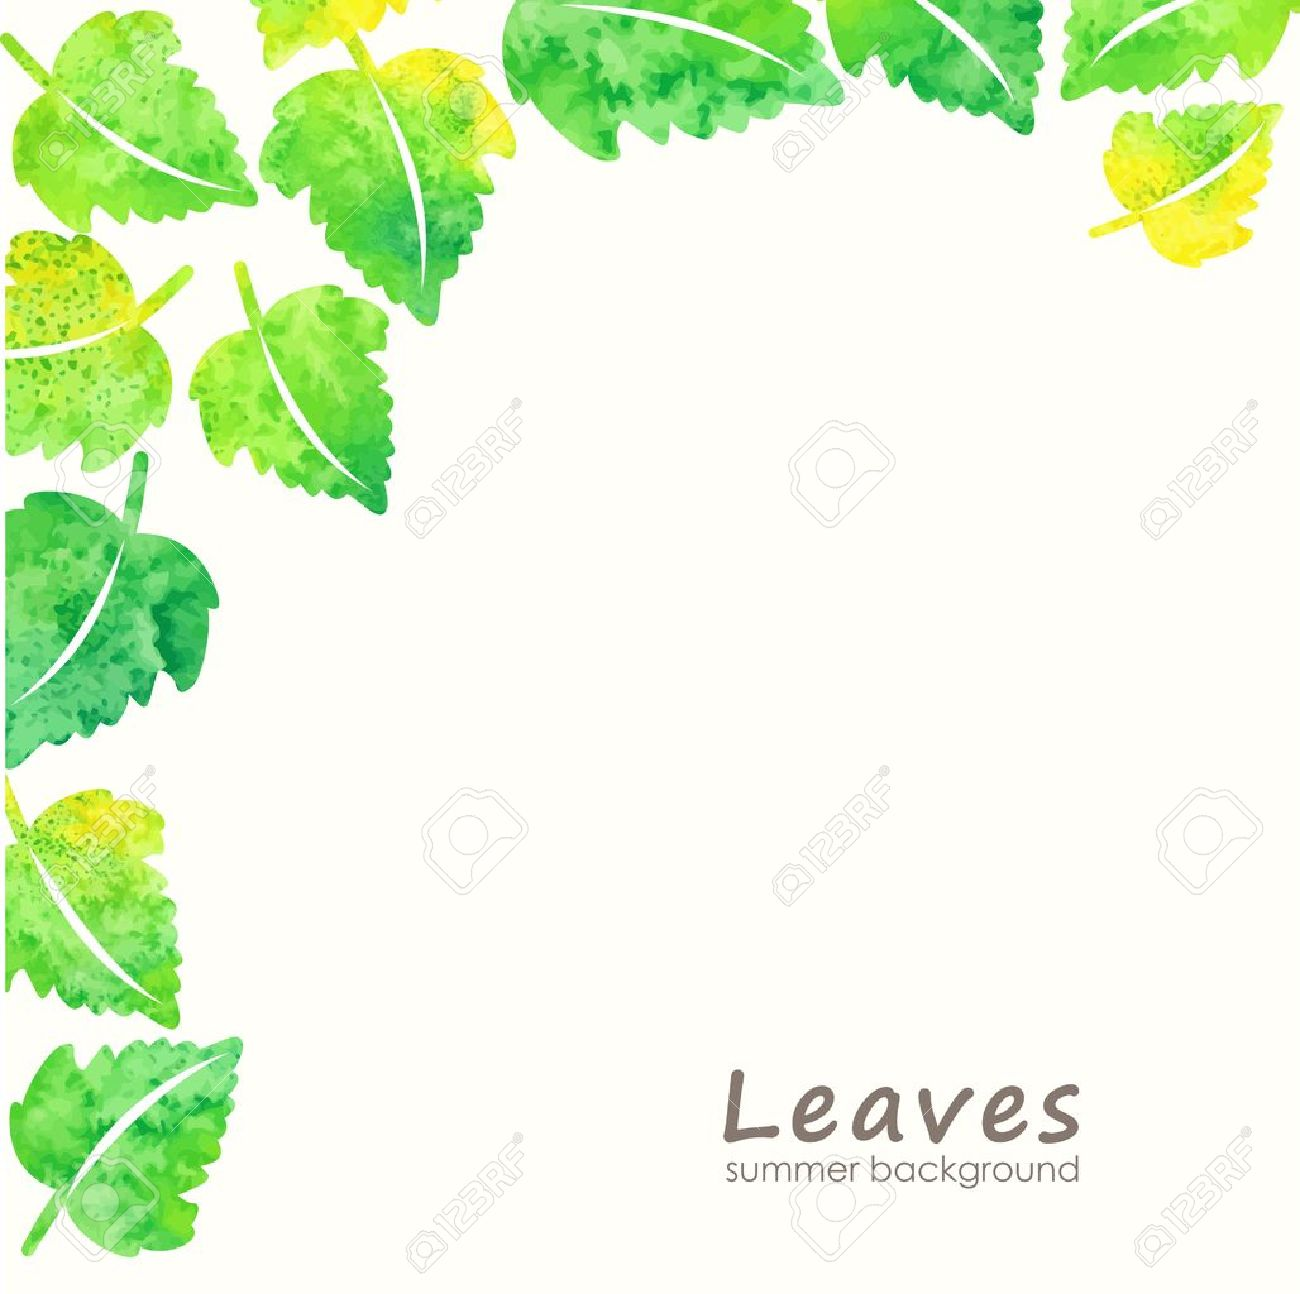 green leaves background eco design template royalty free cliparts